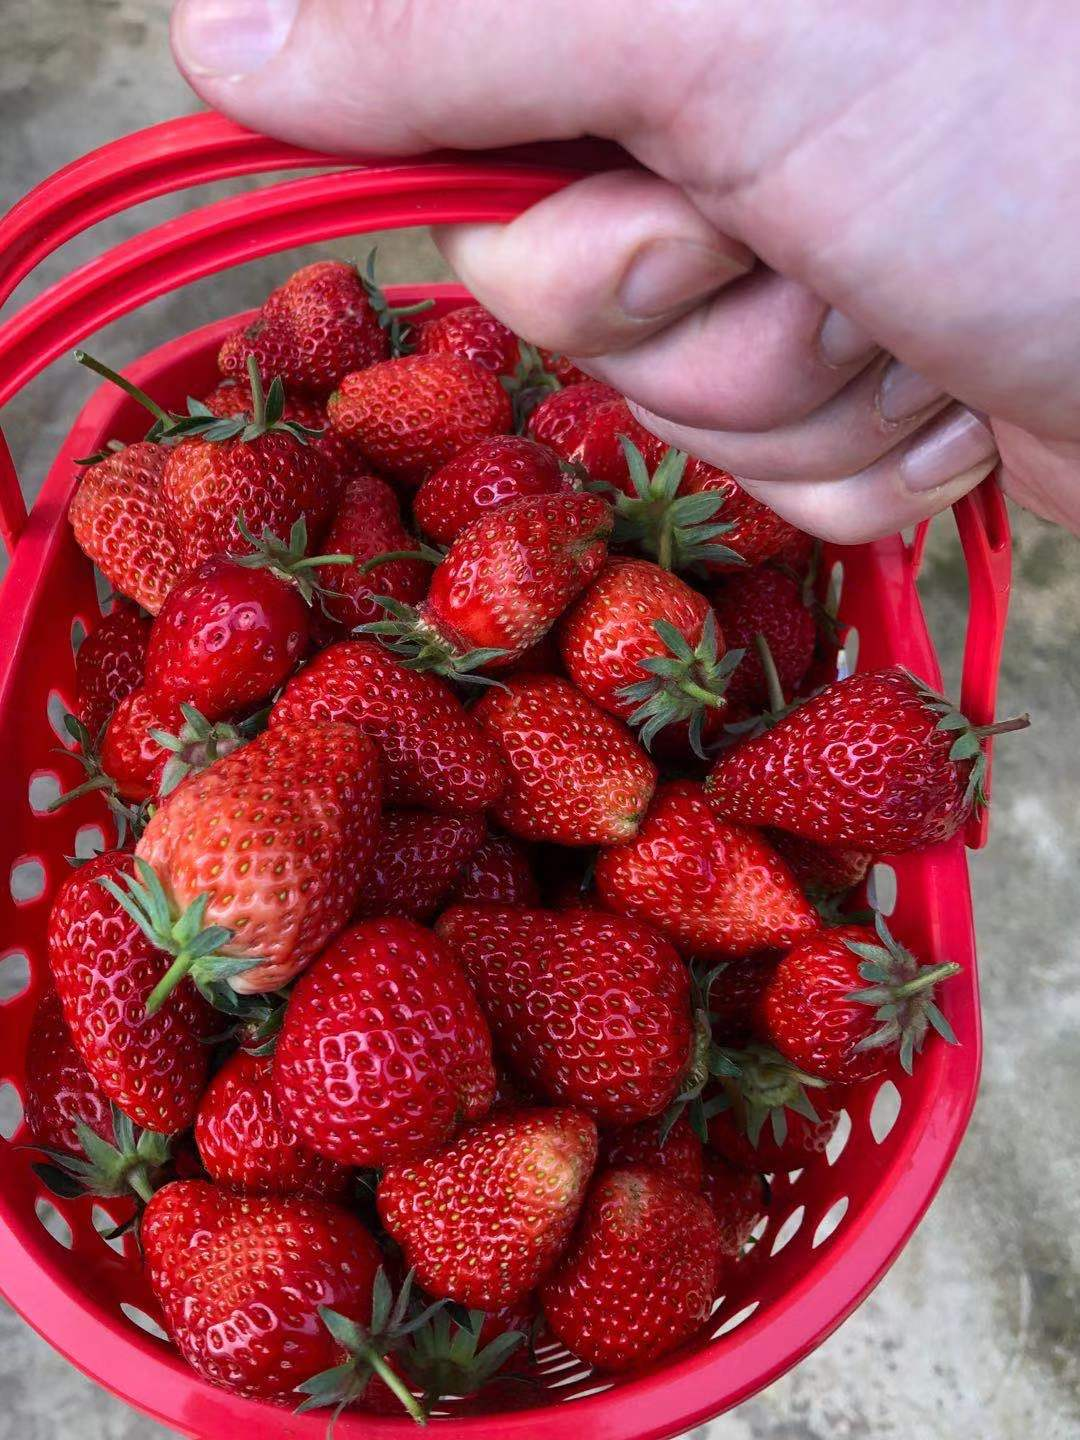 Delicious strawberry picking in Relaxing in Da Tianchi village, Yubei